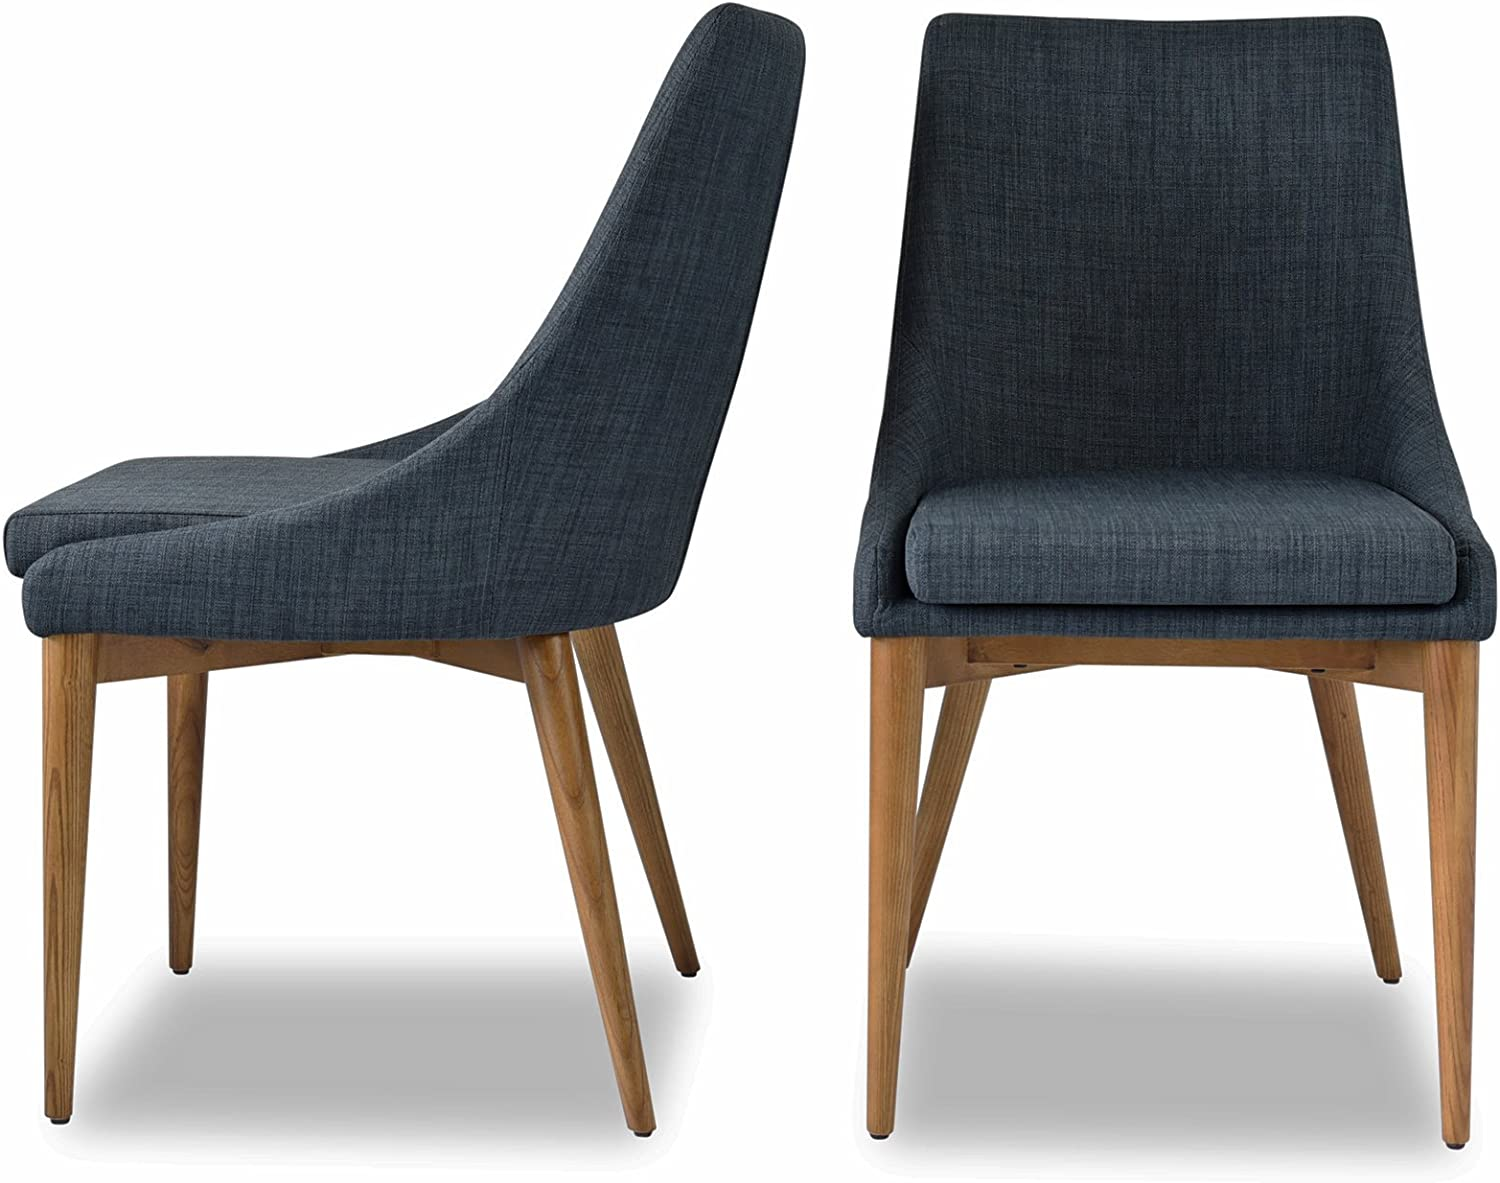 Upholstered Dining Chairs – Mid Century Modern Dining Room Chairs – Set of 2 – Dark Grey Fabric – Solid Wooden Legs – EDLOE FINCH